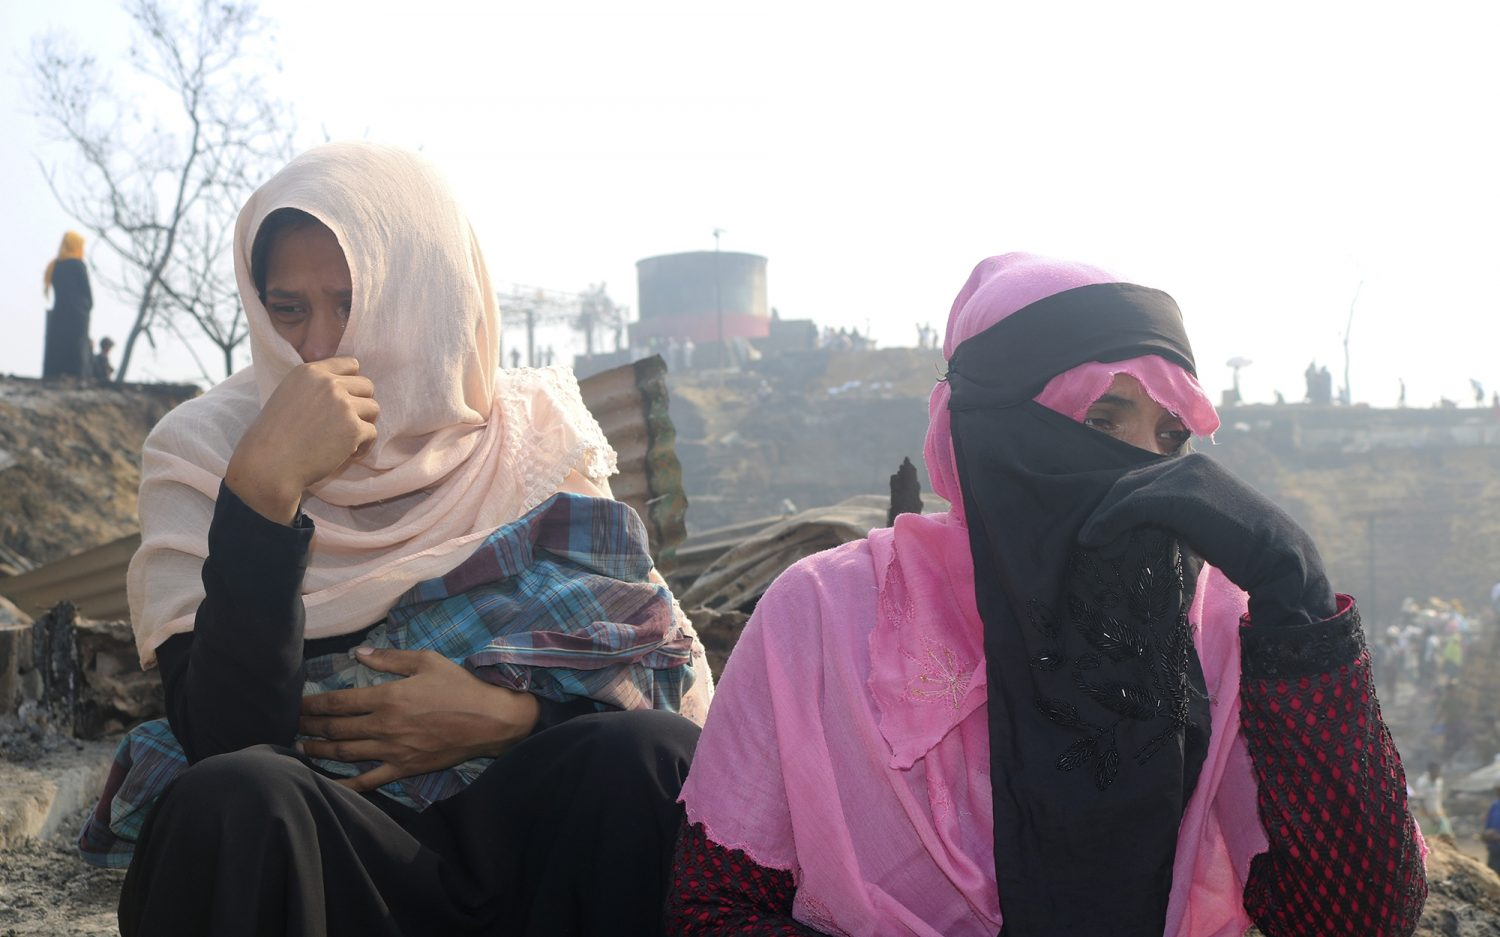 Fire displaces tens of thousands of refugees